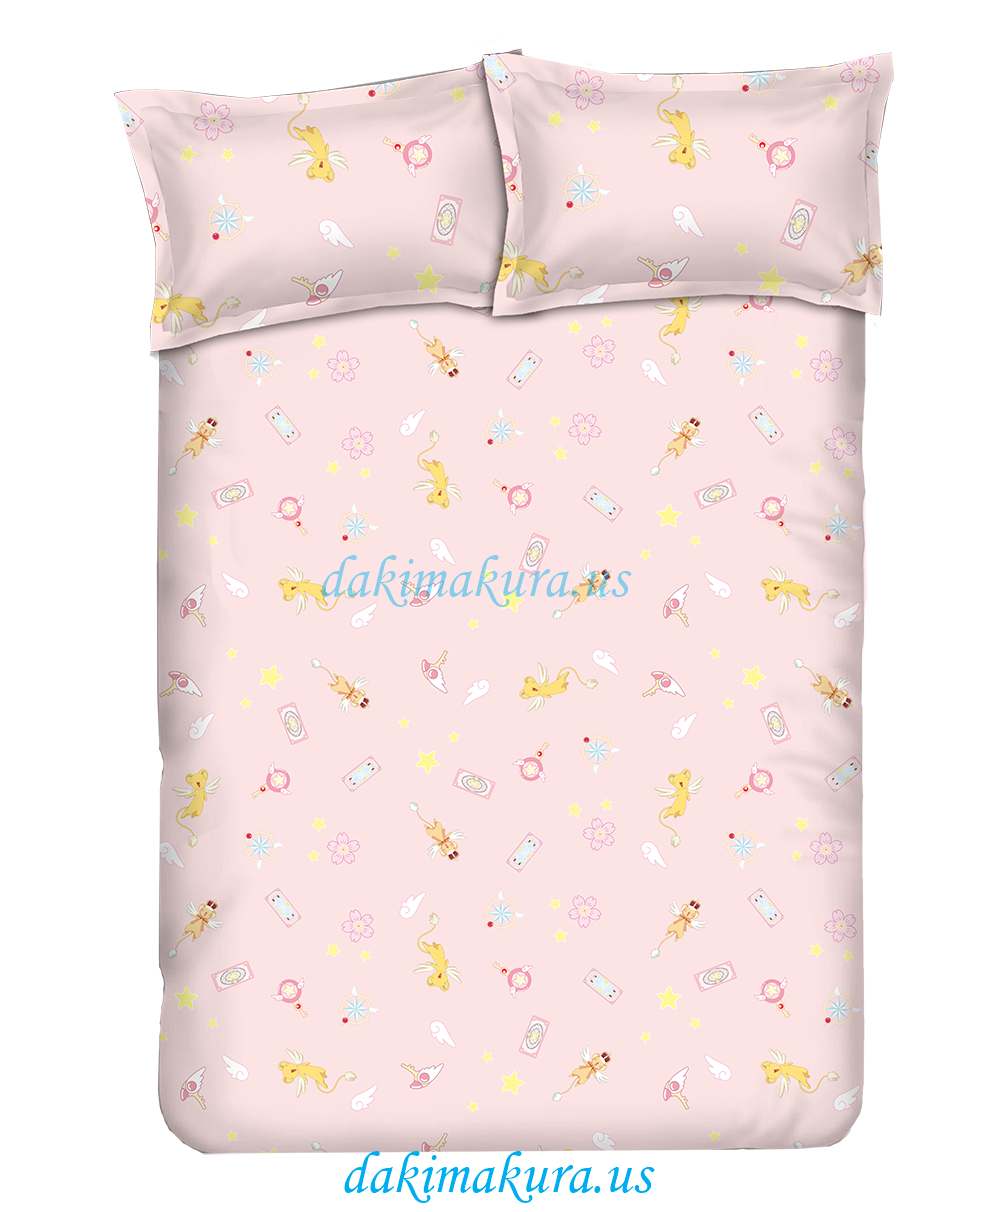 Cardcaptor Sakura The Movie Anime Bedding Sets,Bed Blanket & Duvet Cover,Bed Sheet with Pillow Covers